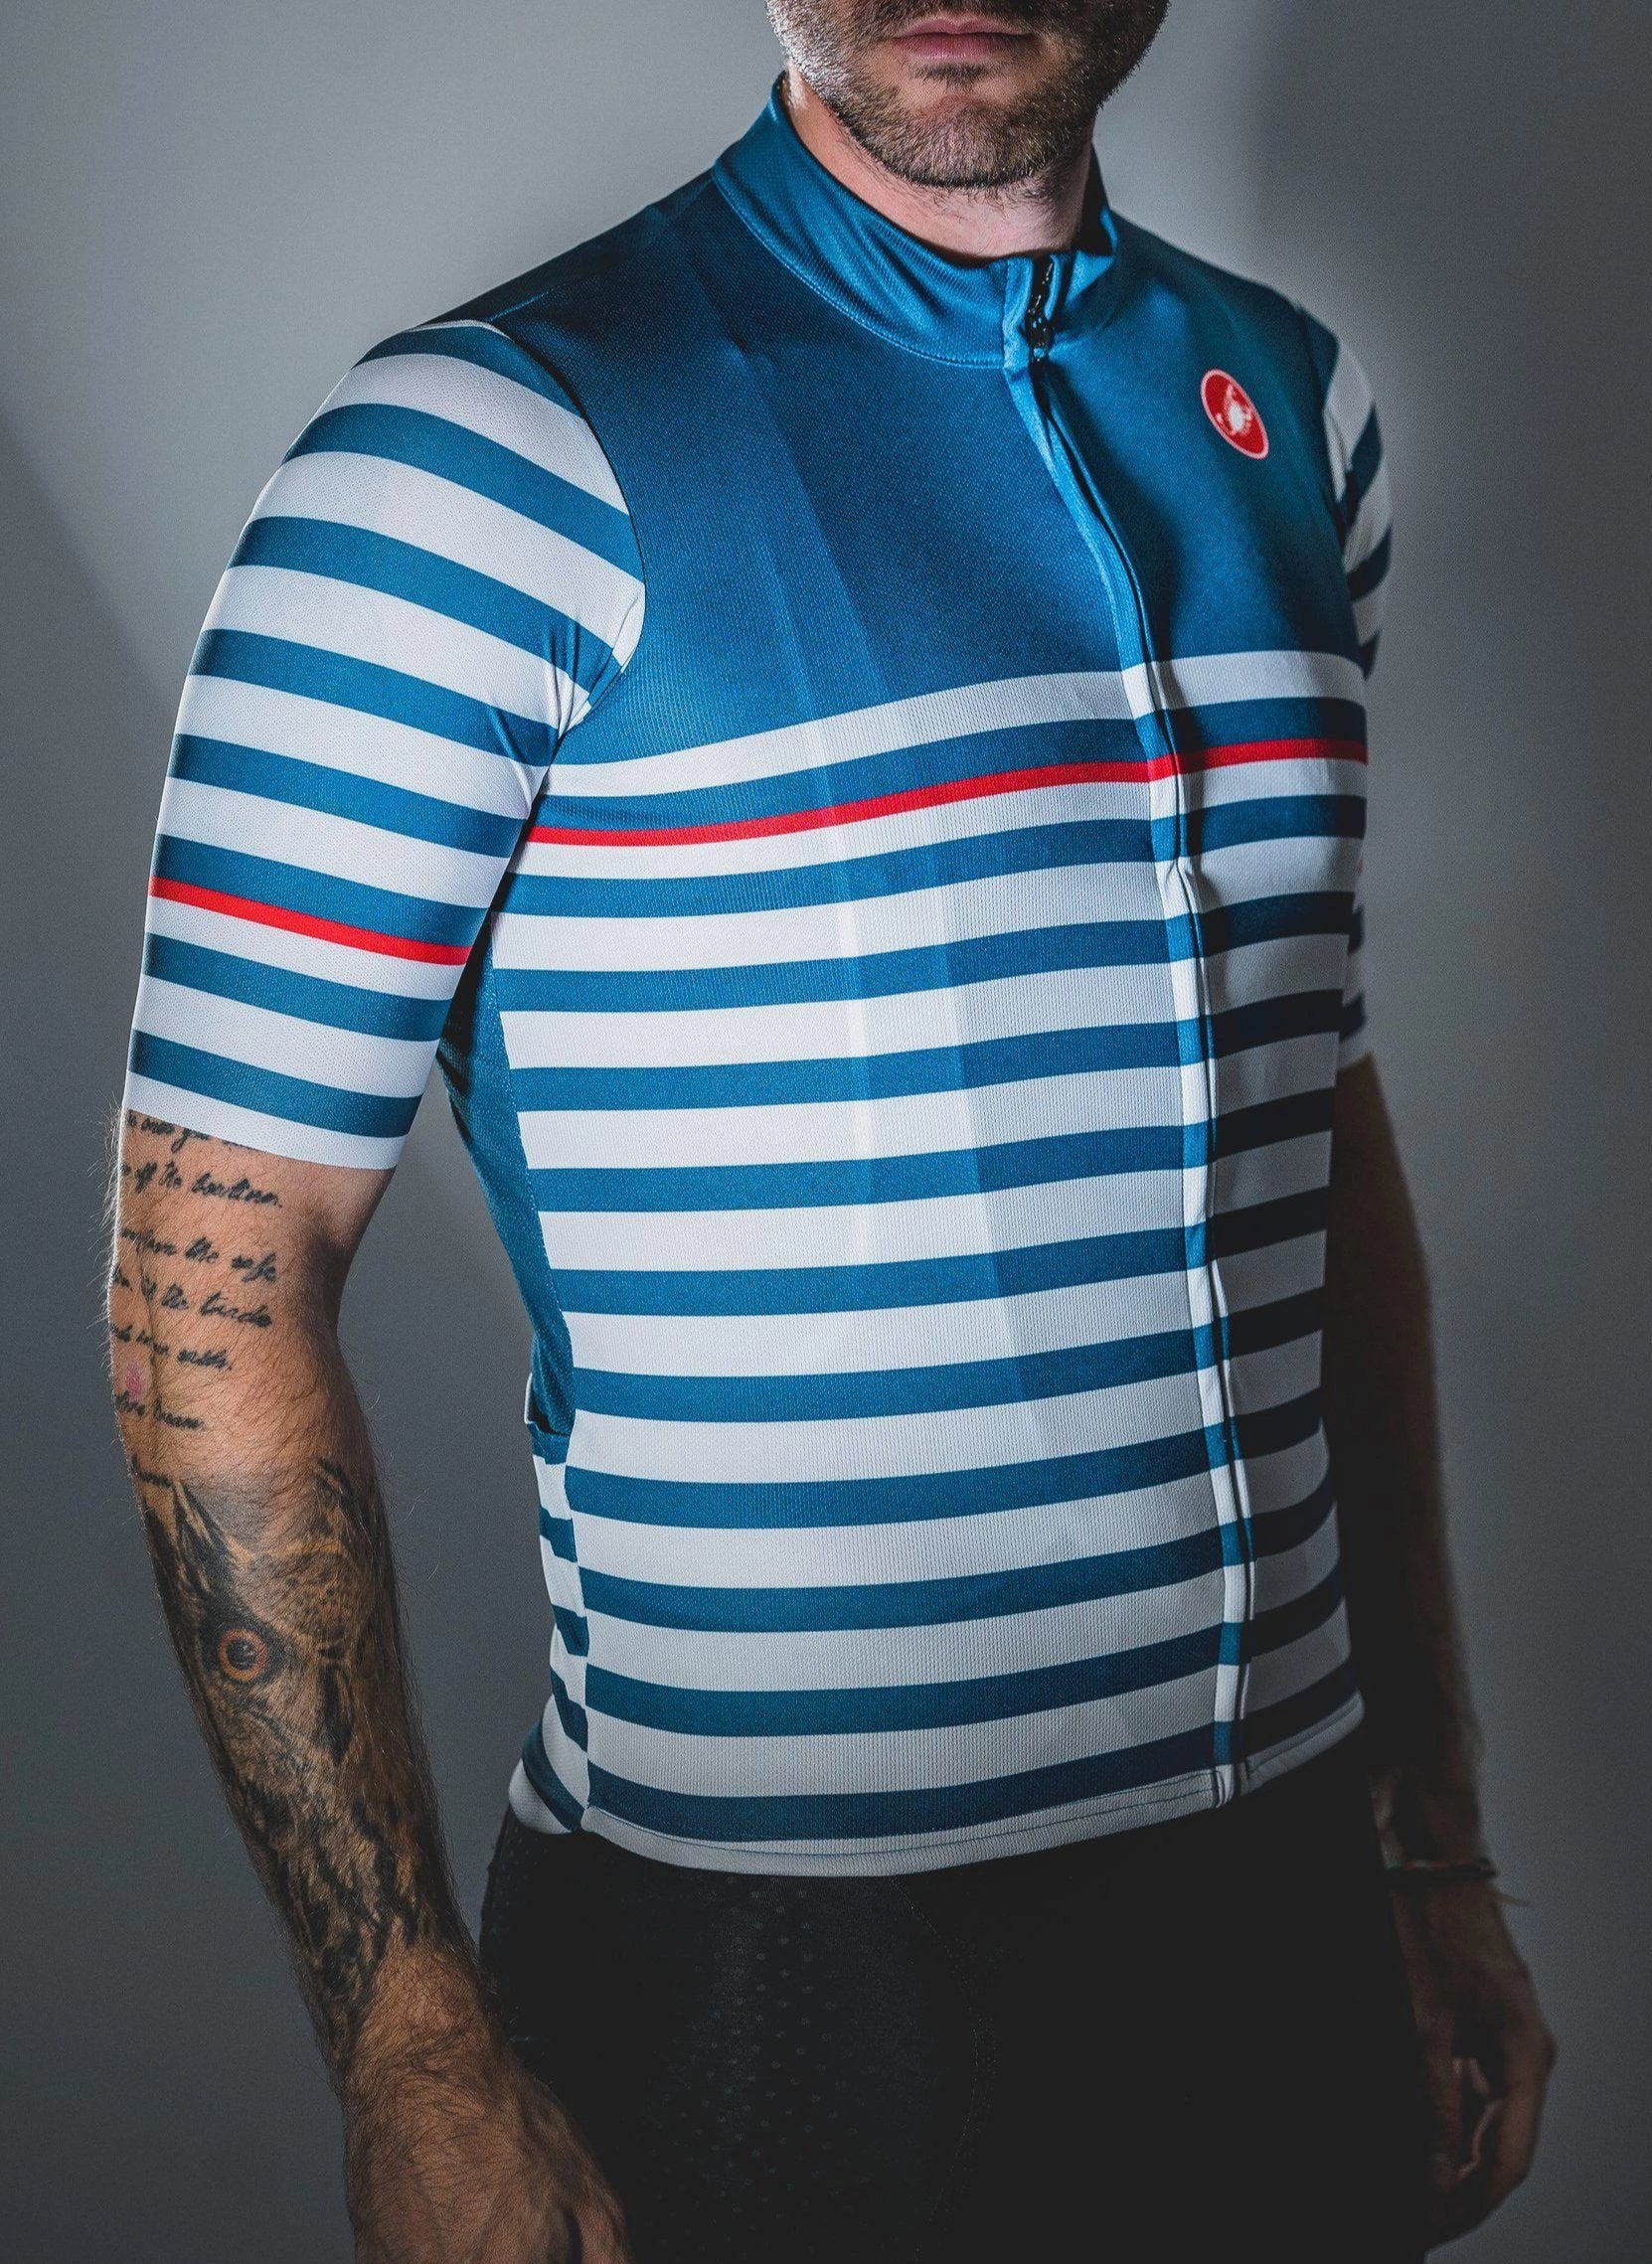 Castelli-Castelli World Champs Squadra Jersey - Sailor-L-Sailor-CS4300412A397024-saddleback-elite-performance-cycling